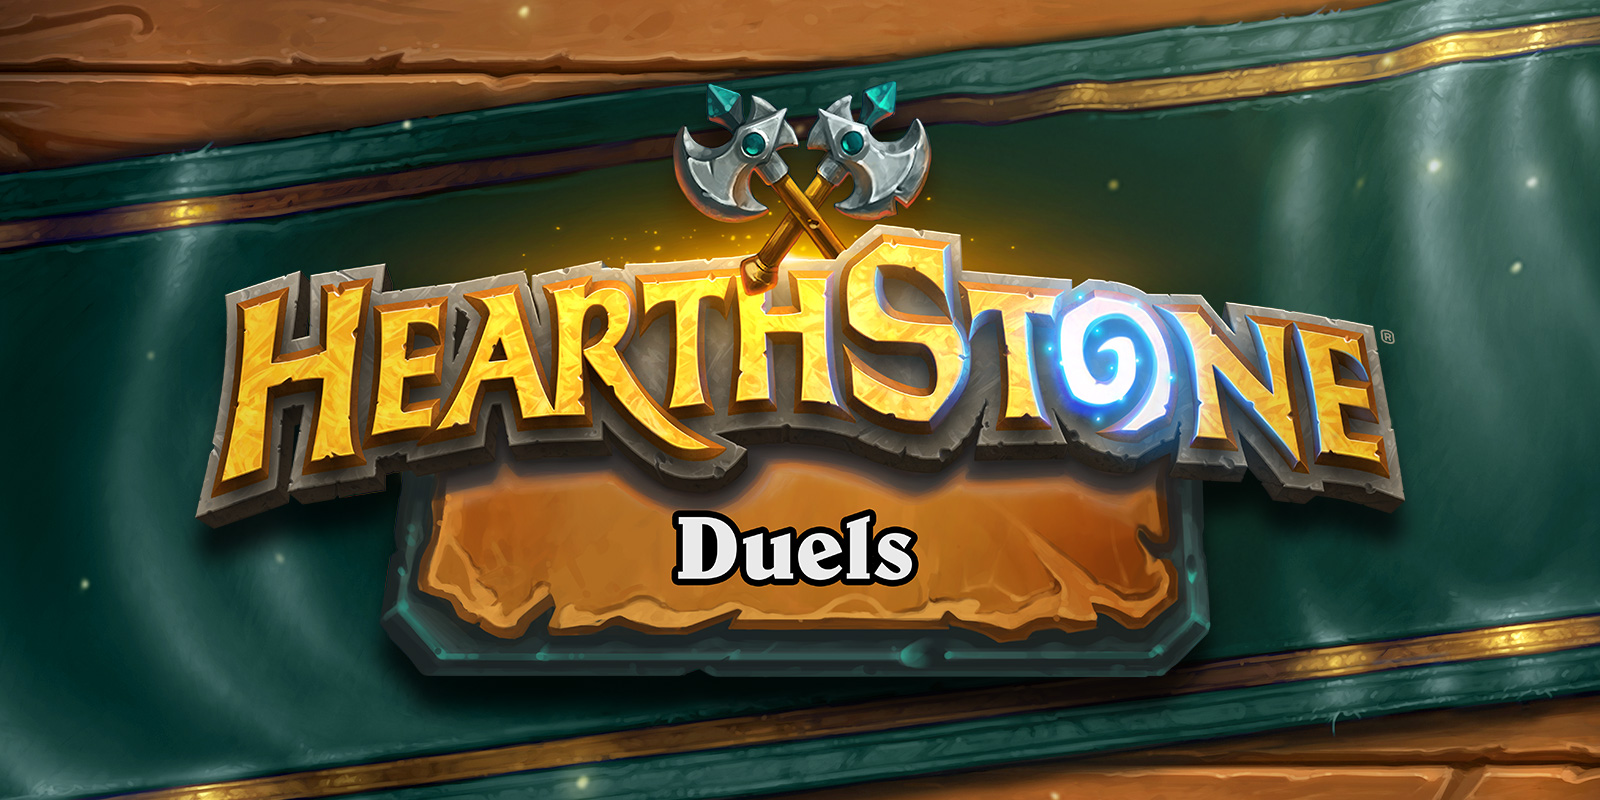 New Game Mode For Hearthstone Has Been Announced Know More About It Finance Rewind Скачать обои hearthstone purple logo, 4k, purple brickwall, hearthstone logo, 2020 games, hearthstone always know what cards you're holding with the official hearthstone logo card holder! new game mode for hearthstone has been